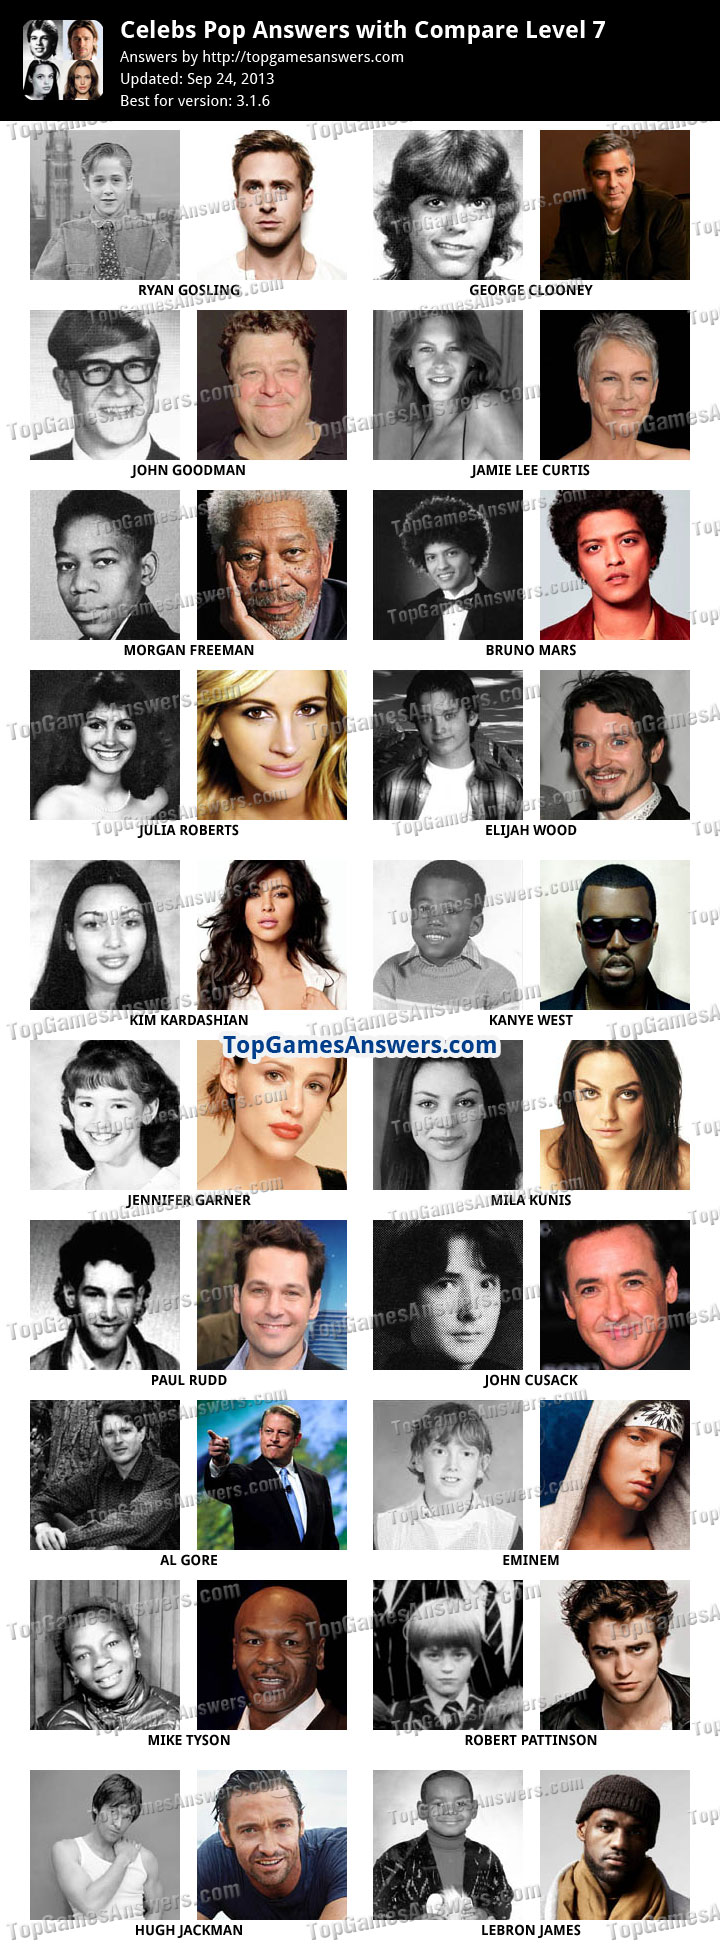 Celebs Pop Answers Compare Level 7